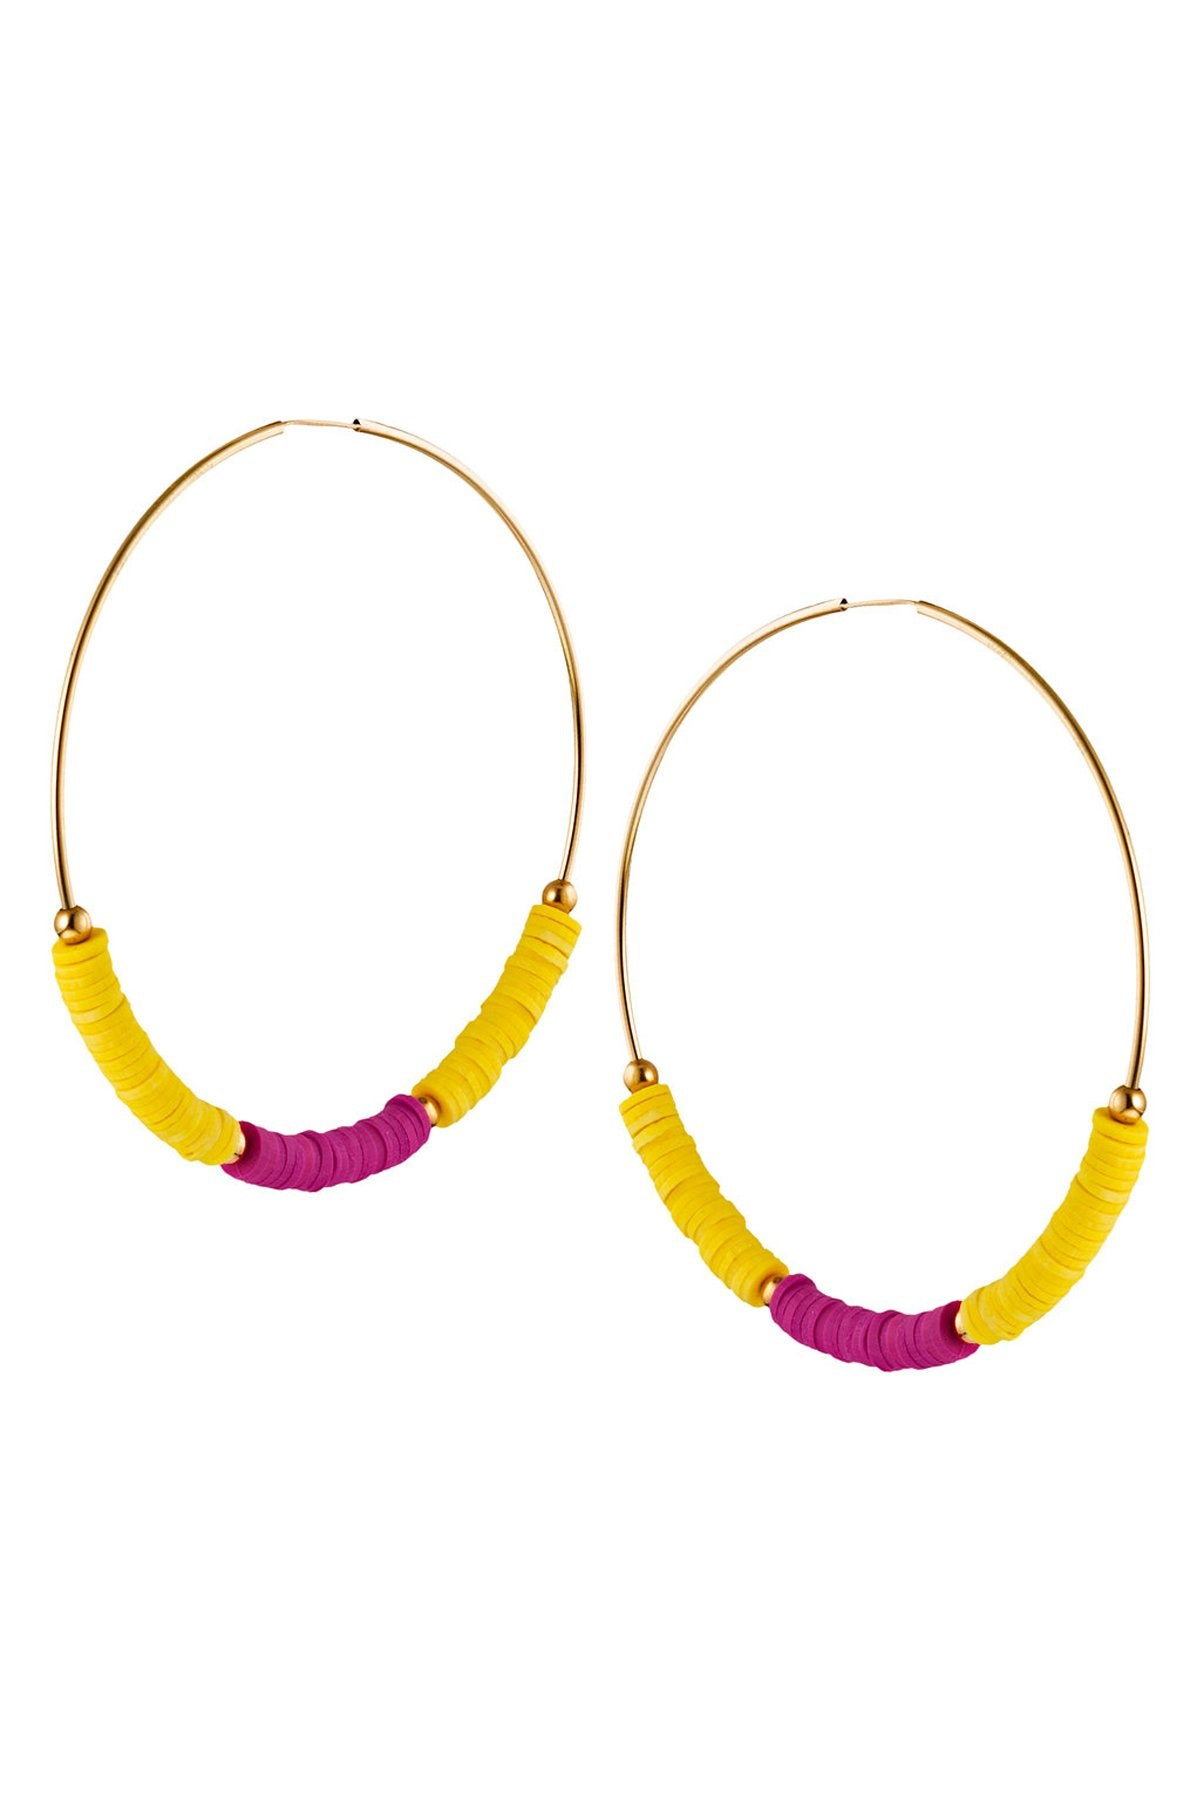 TAUDREY - Guava Hoop Earrings • Limon